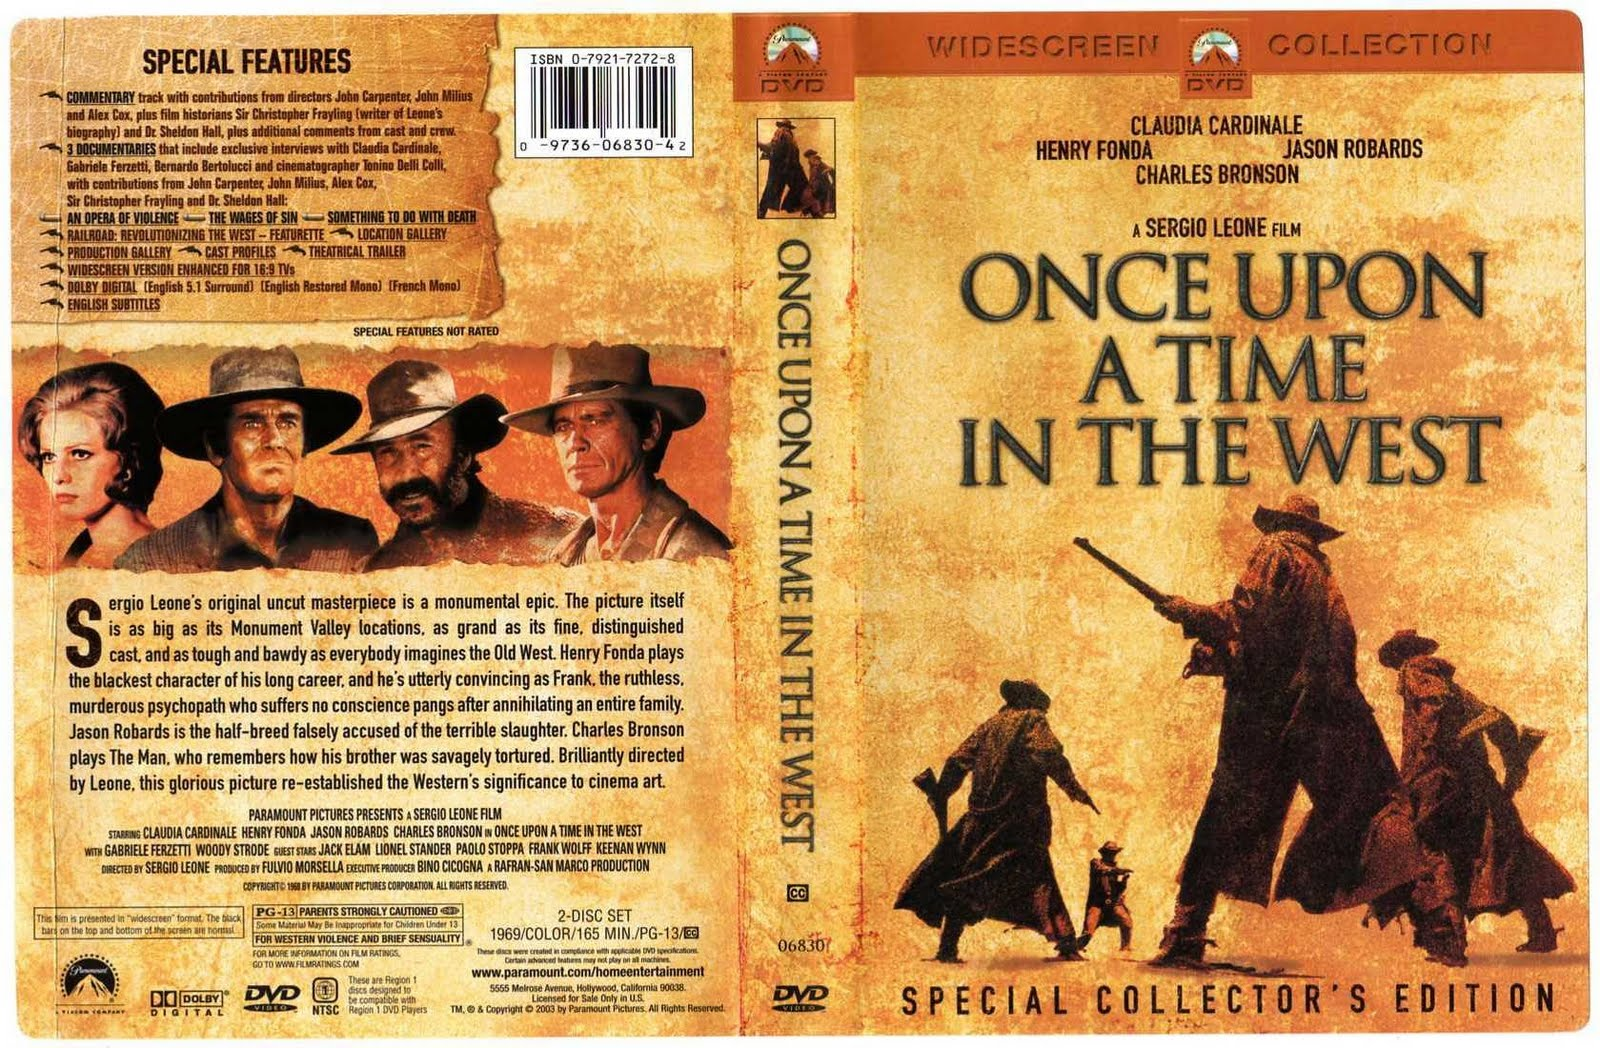 http://2.bp.blogspot.com/_YLLi96ylwcM/TCAT21EE57I/AAAAAAAABdU/CXzJ2tvo3uU/s1600/Once_Upon_A_Time_In_The_West_R1-%5Bcdcovers_cc%5D-front.jpg